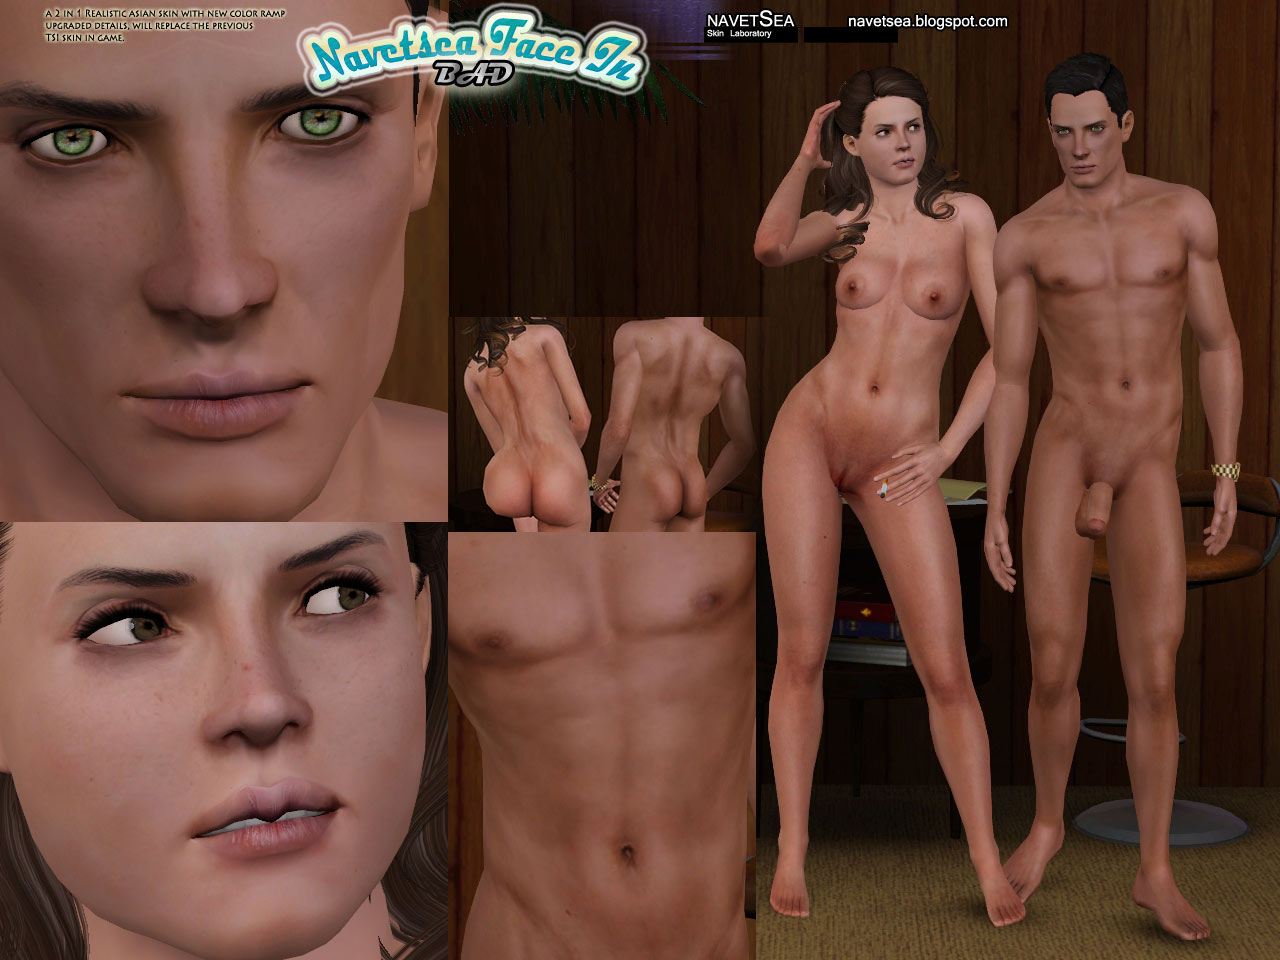 Nude mods for sims 3 softcore thumbs